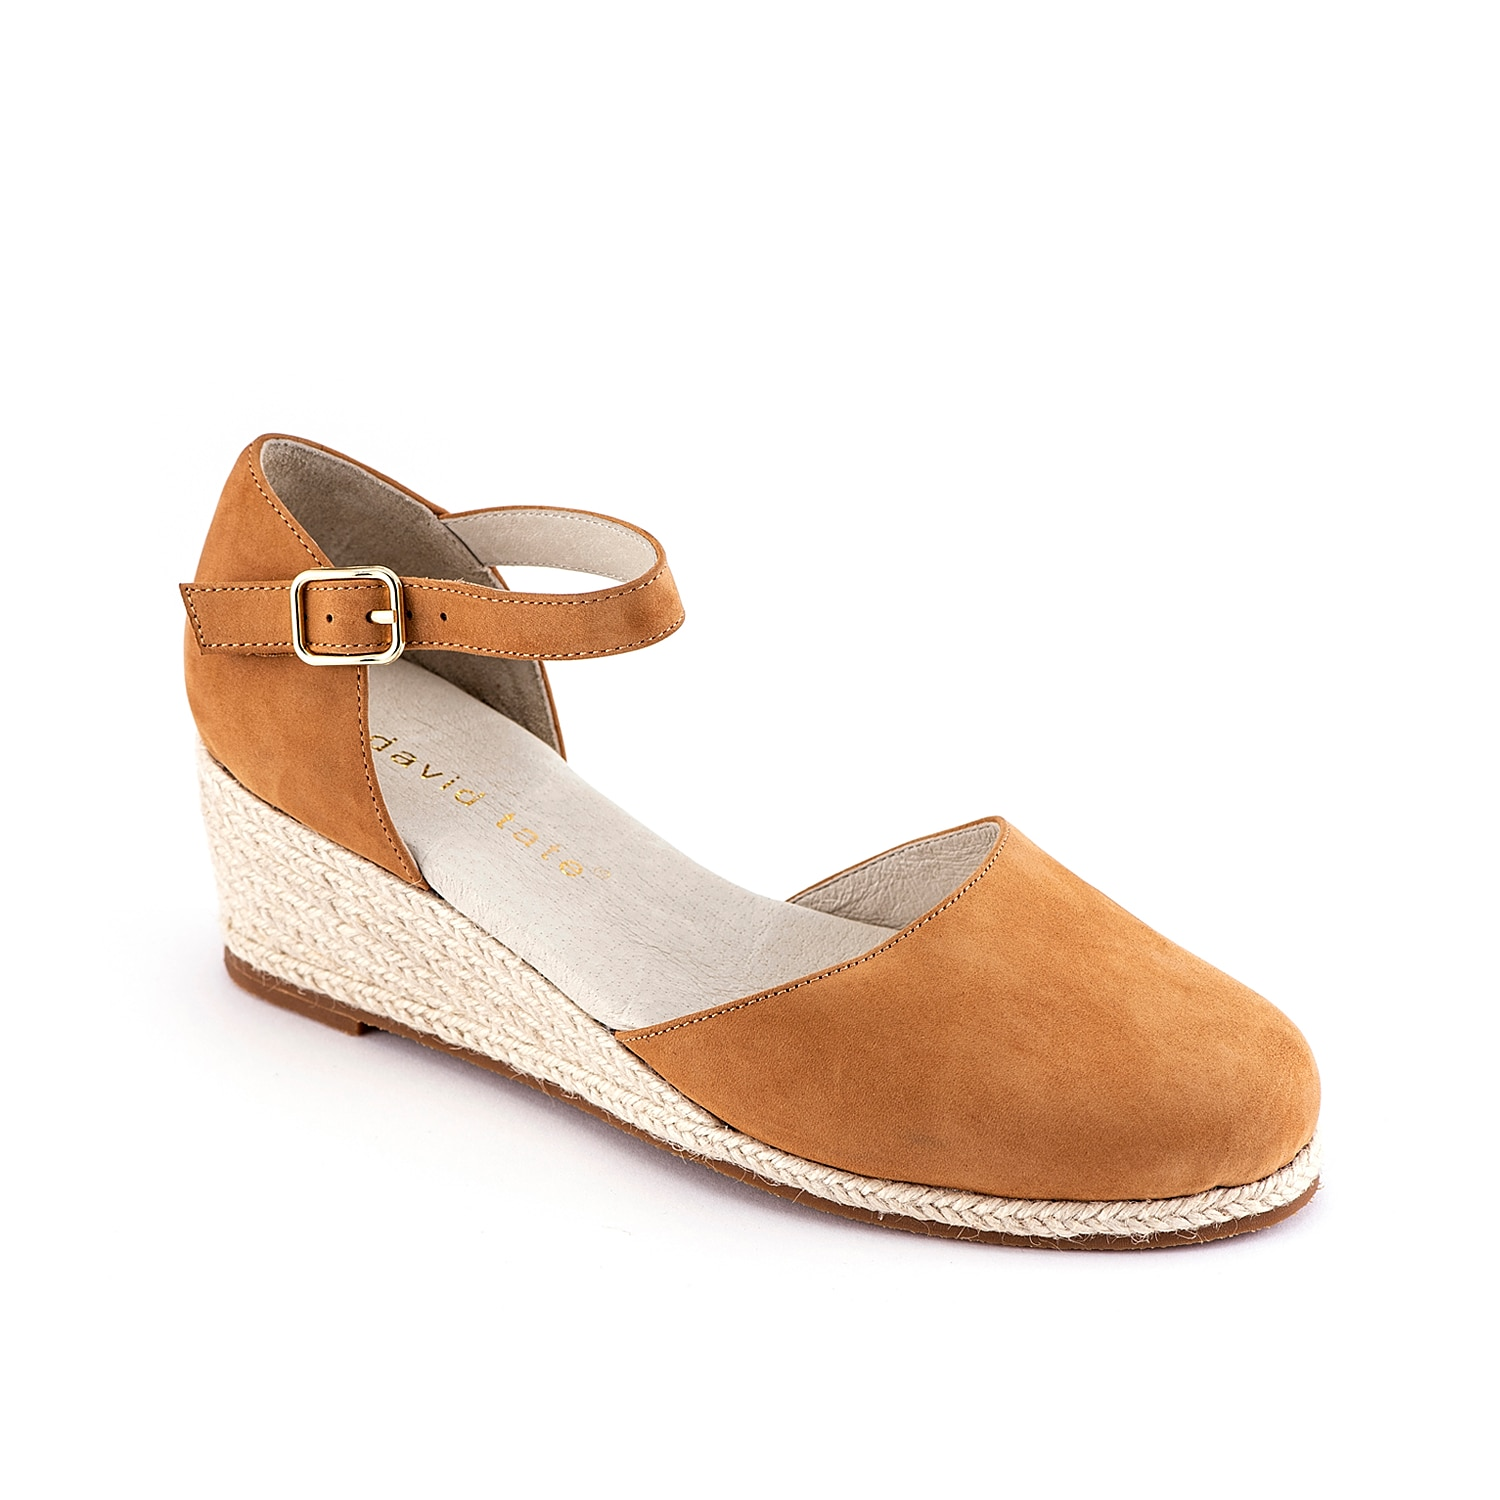 Keep your look cute and comfy with the Anala wedge sandal from David Tate. This silhouette is fashioned with a nubuck leather upper and an espadrille heel to pair with maxi dresses and floppy hats!